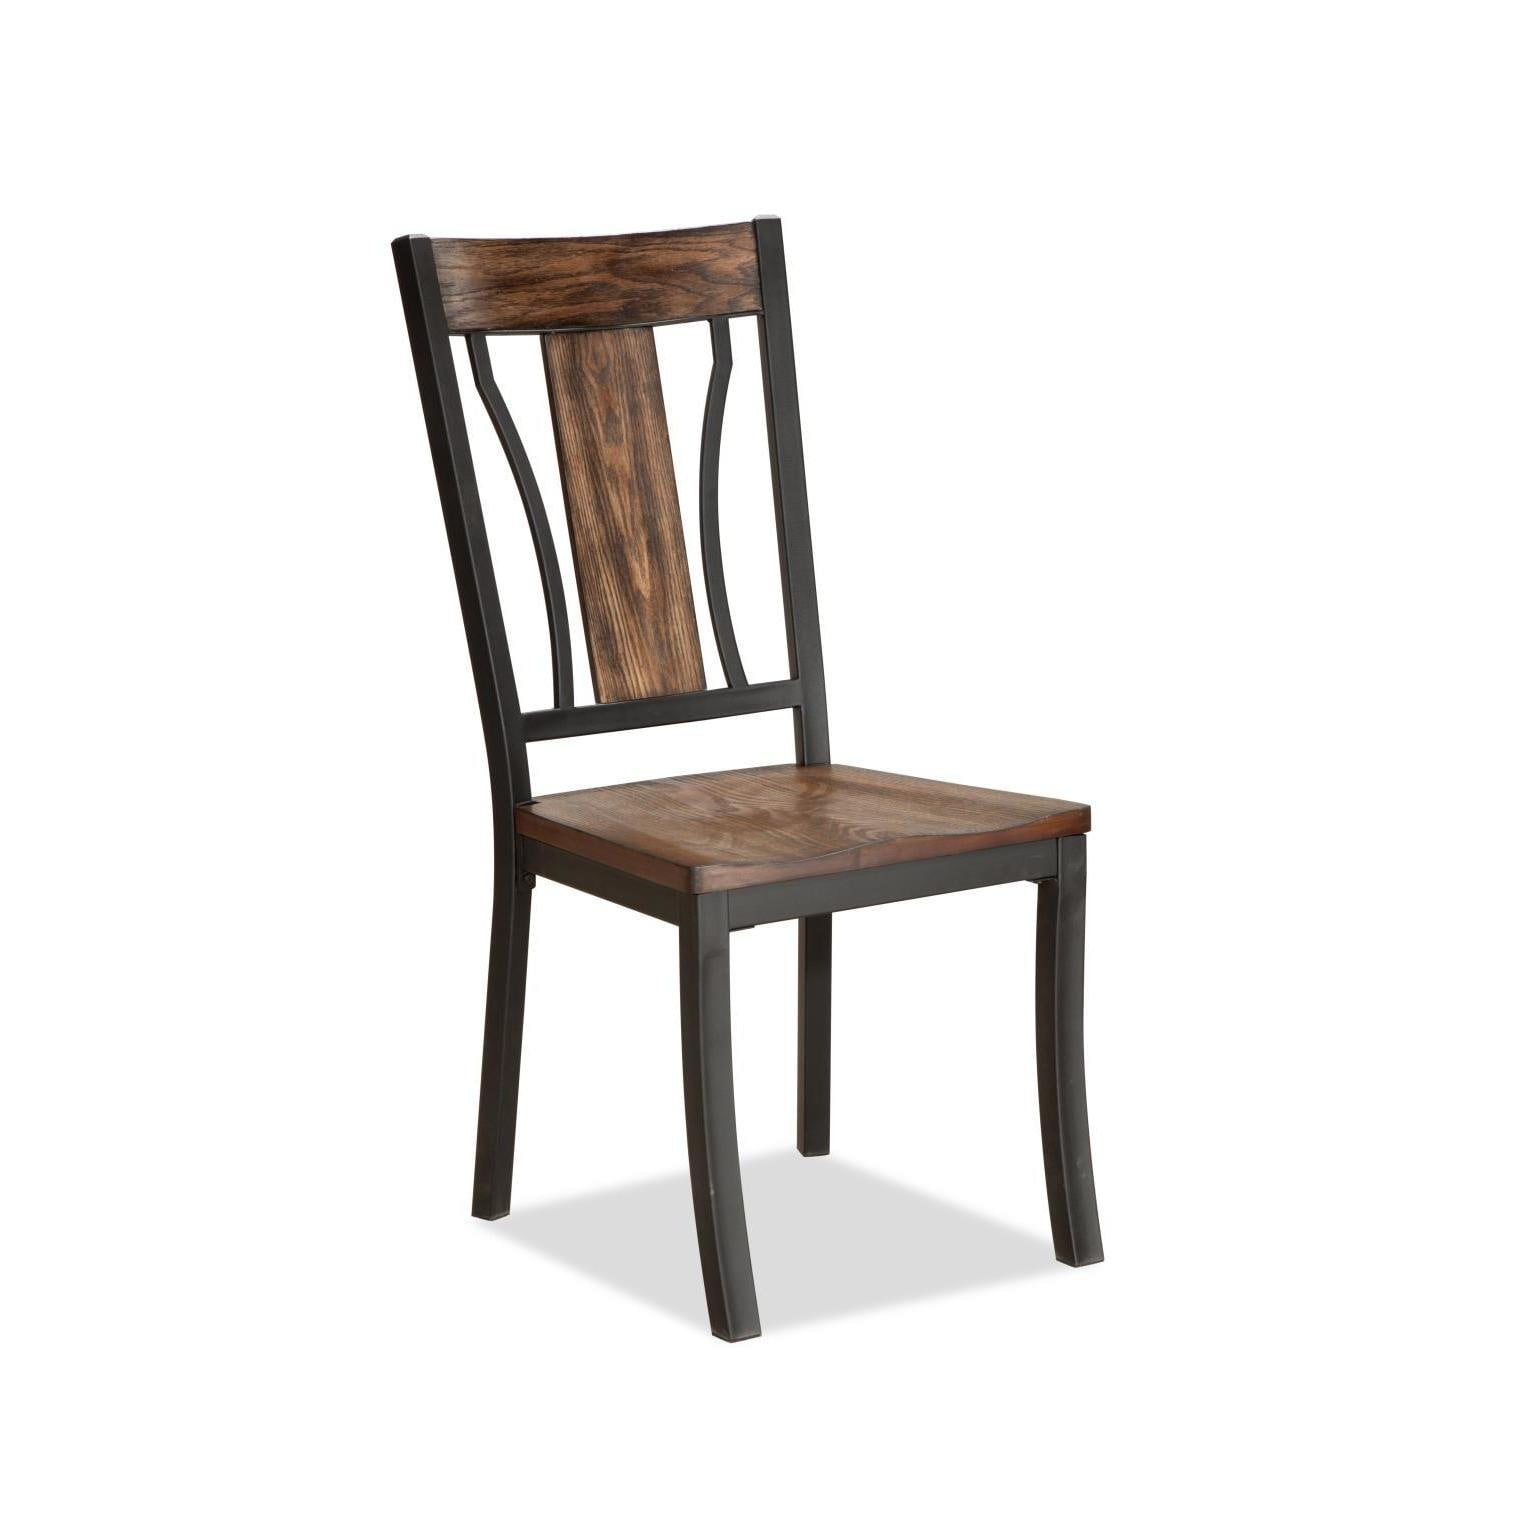 Bernards Furniture Hollister Metal and Wood Side Chairs (...